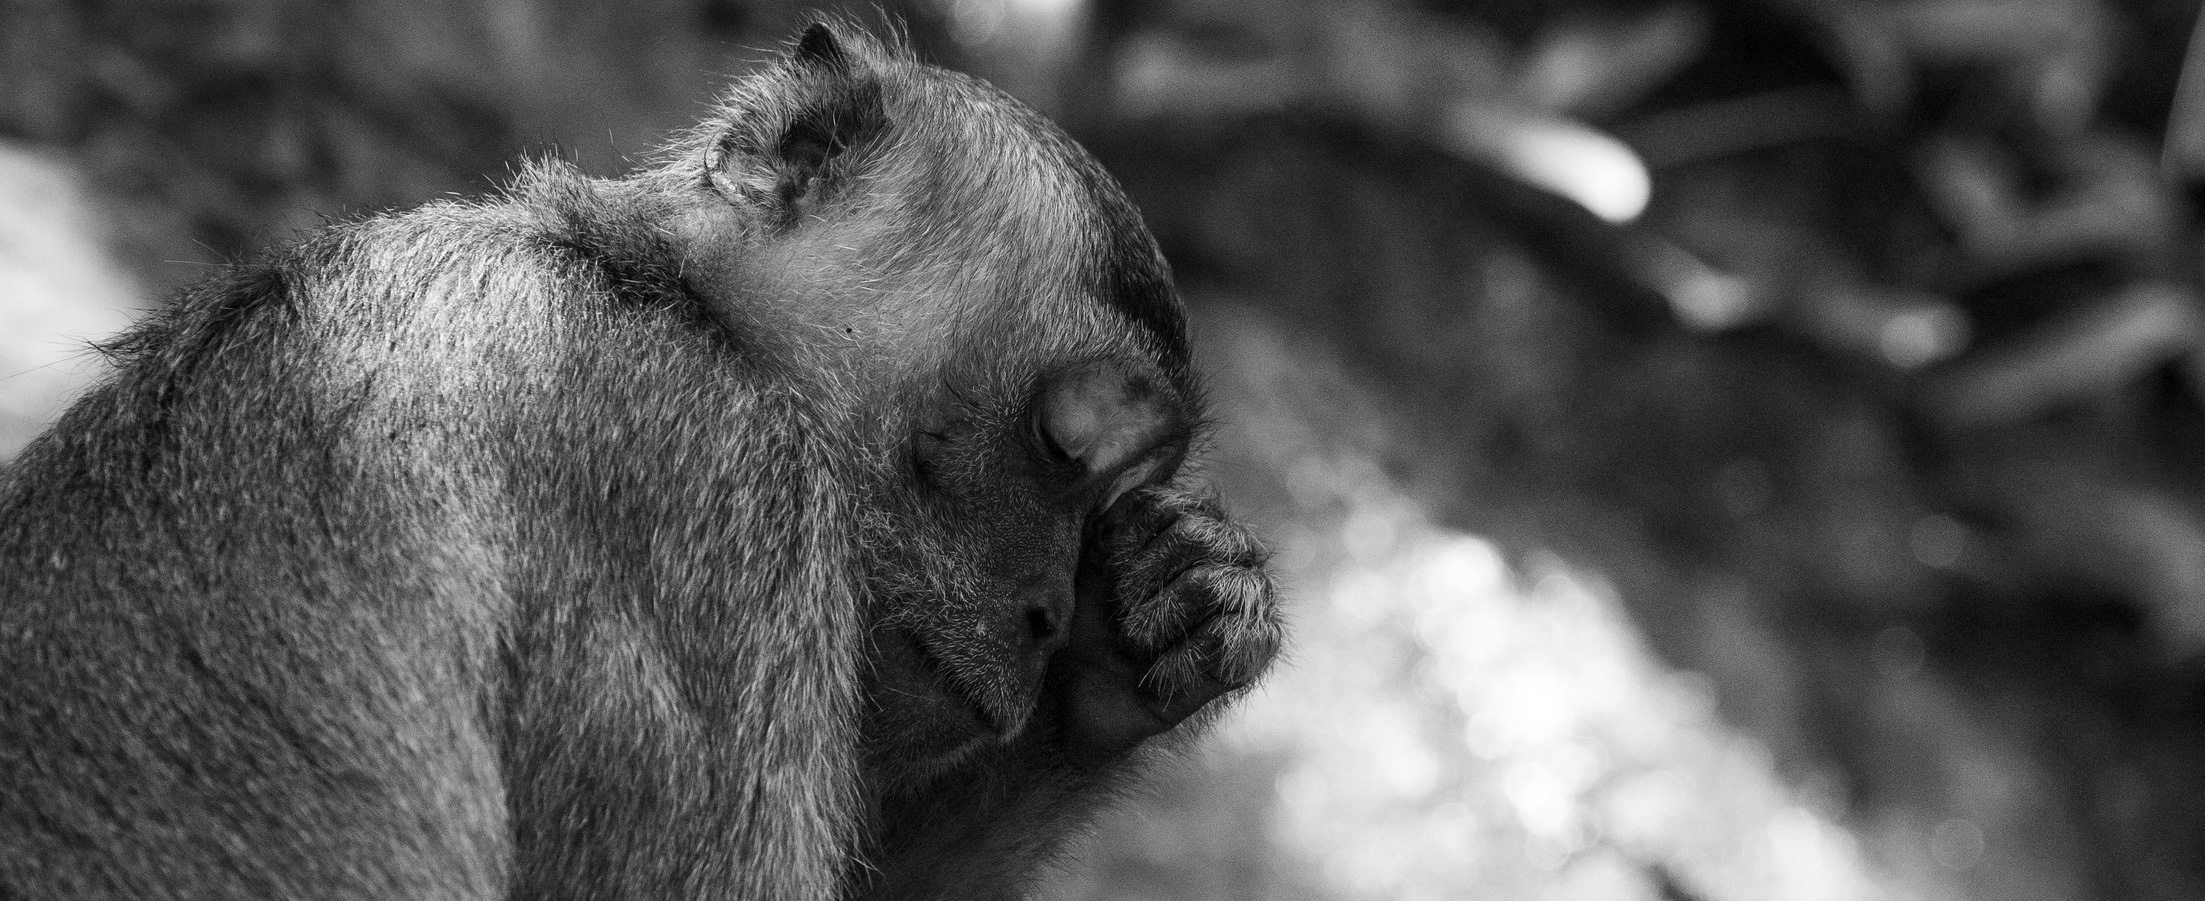 An adult male Long-tailed Macaque rubbing its eye in Bako National Park, Borneo, Malaysia.